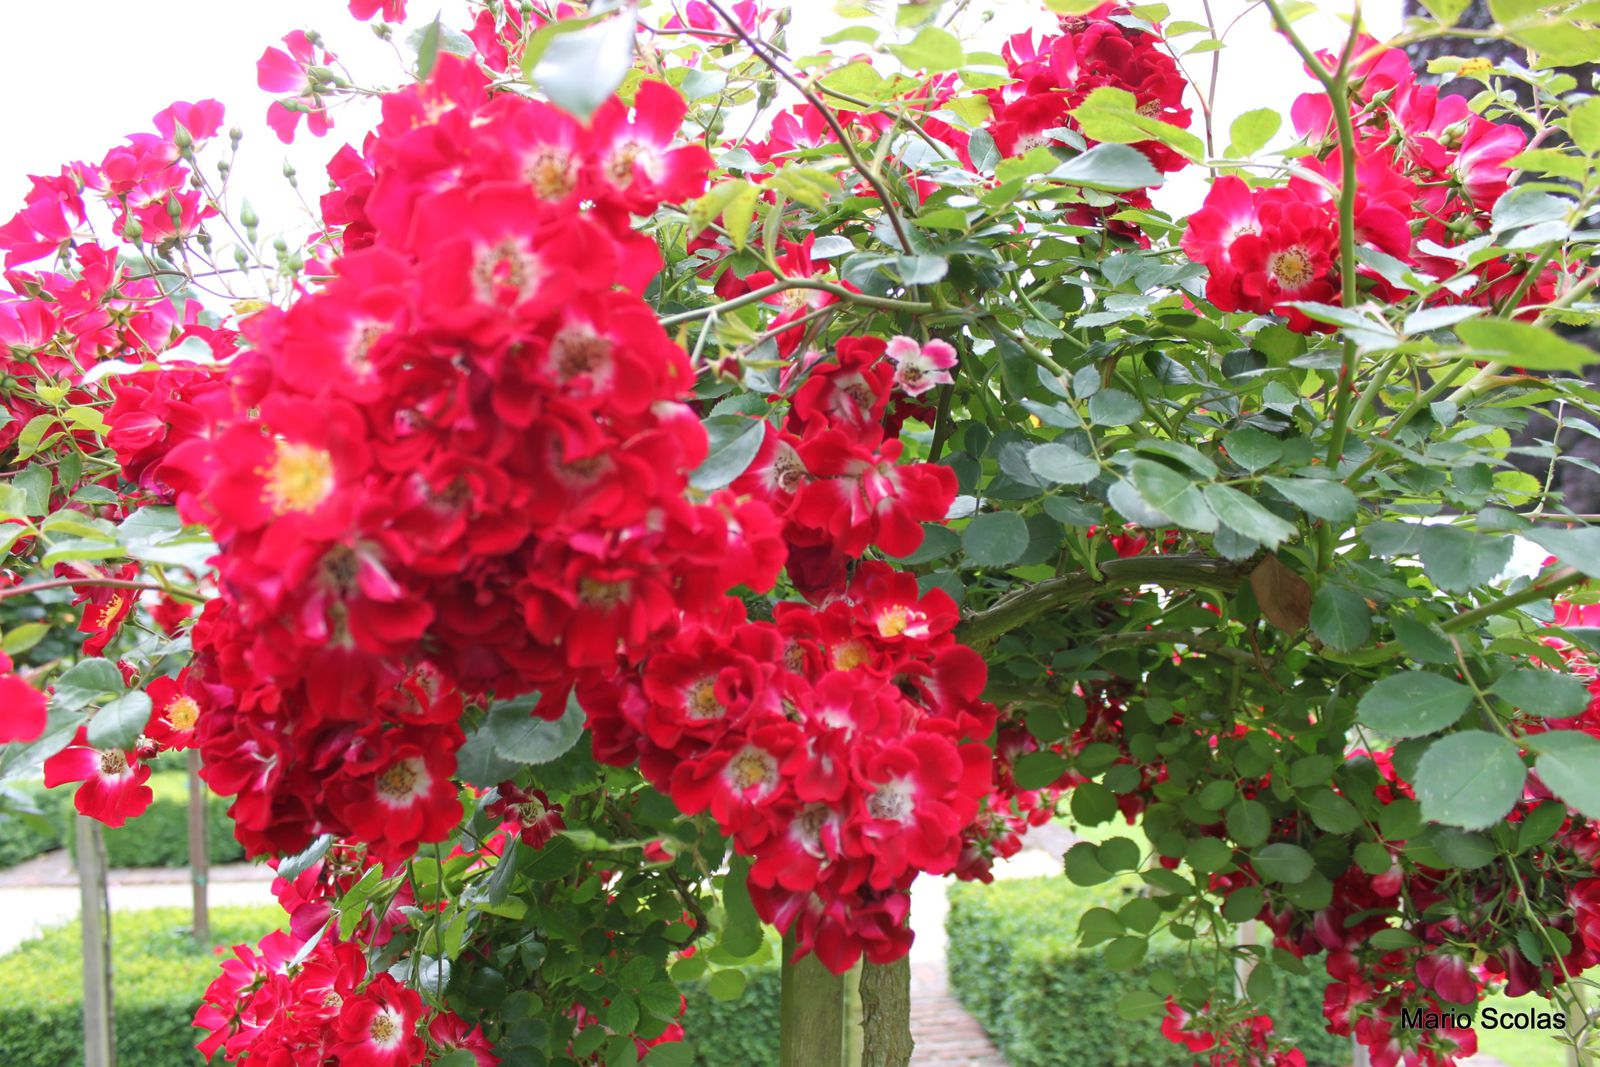 Signification des roses rouges lno for Chiffre 13 signification